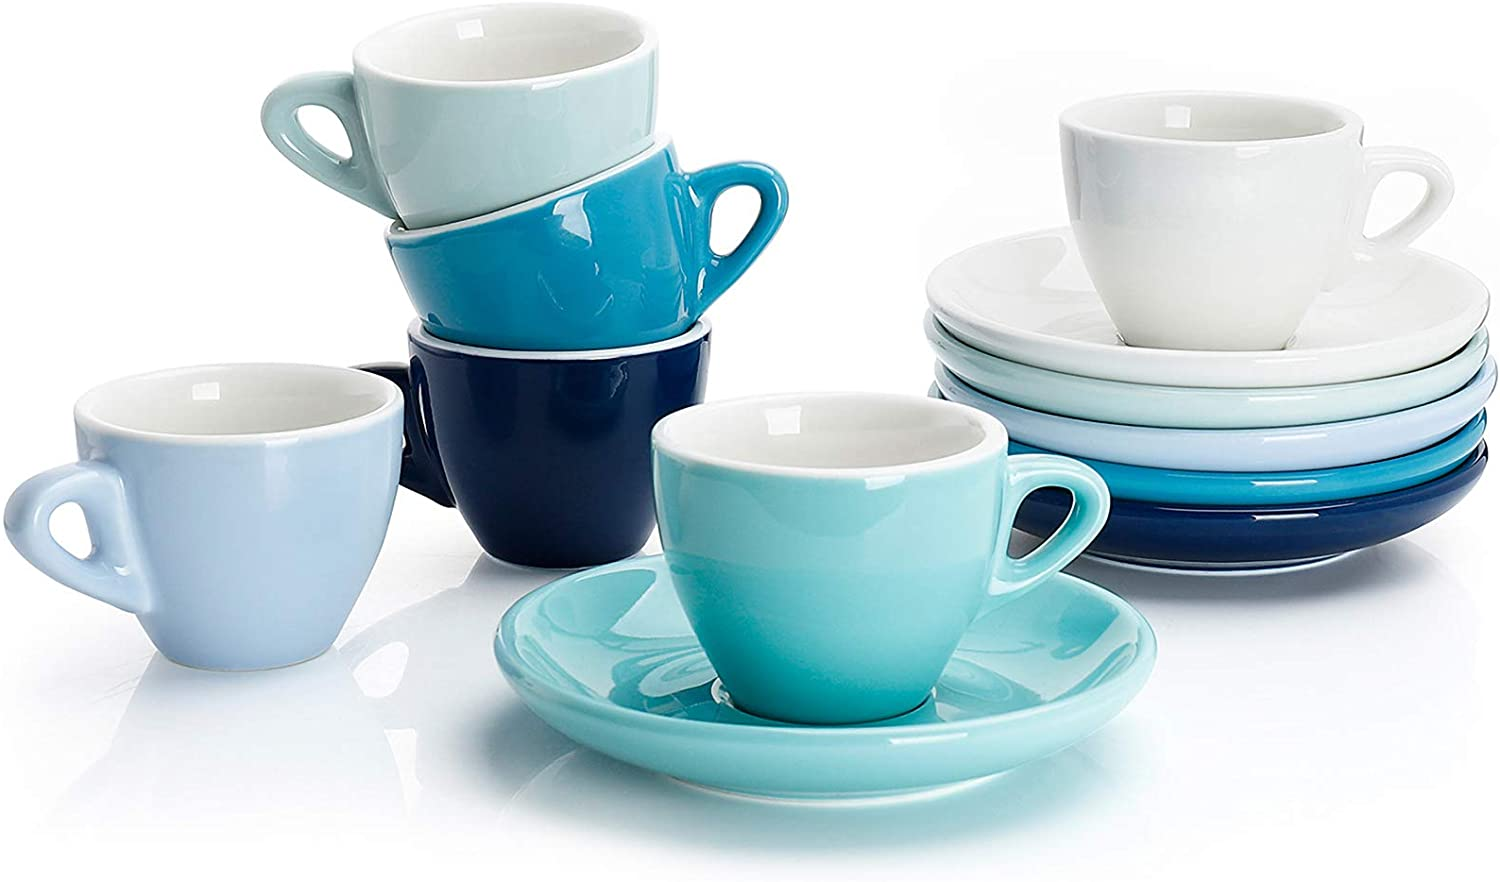 Sweese 401.003 Porcelain Espresso Cups with Saucers - 2 Ounce - Set of 6, Cool Assorted Colors